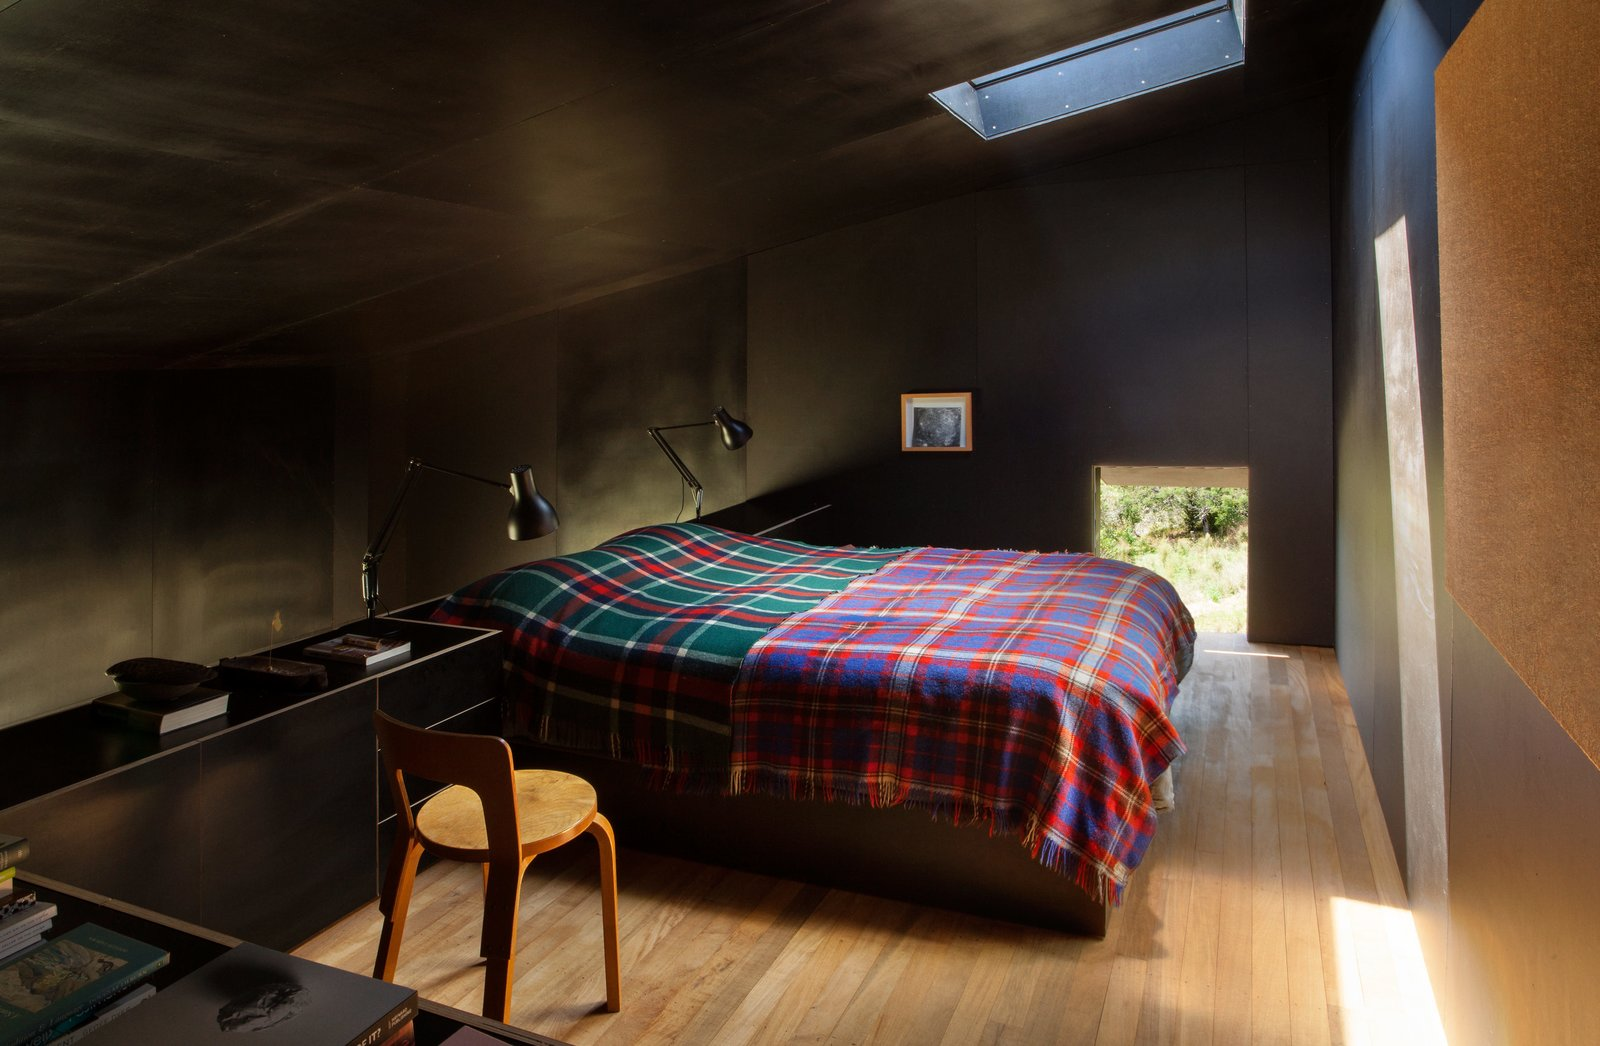 """The formply used to line the black interior creates a """"small, inky bubble of space,"""" Cheshire says. """"It's incredibly calm and quiet as a consequence."""" His firm designed the built-in bed and cabinetry. The two Type 75 lamps are by Kenneth Grange for Anglepoise, and the Chair 65 is by Alvar Aalto.  Photo 5 of 7 in Two Tiny Cabins Chose Simplicity Over Size"""